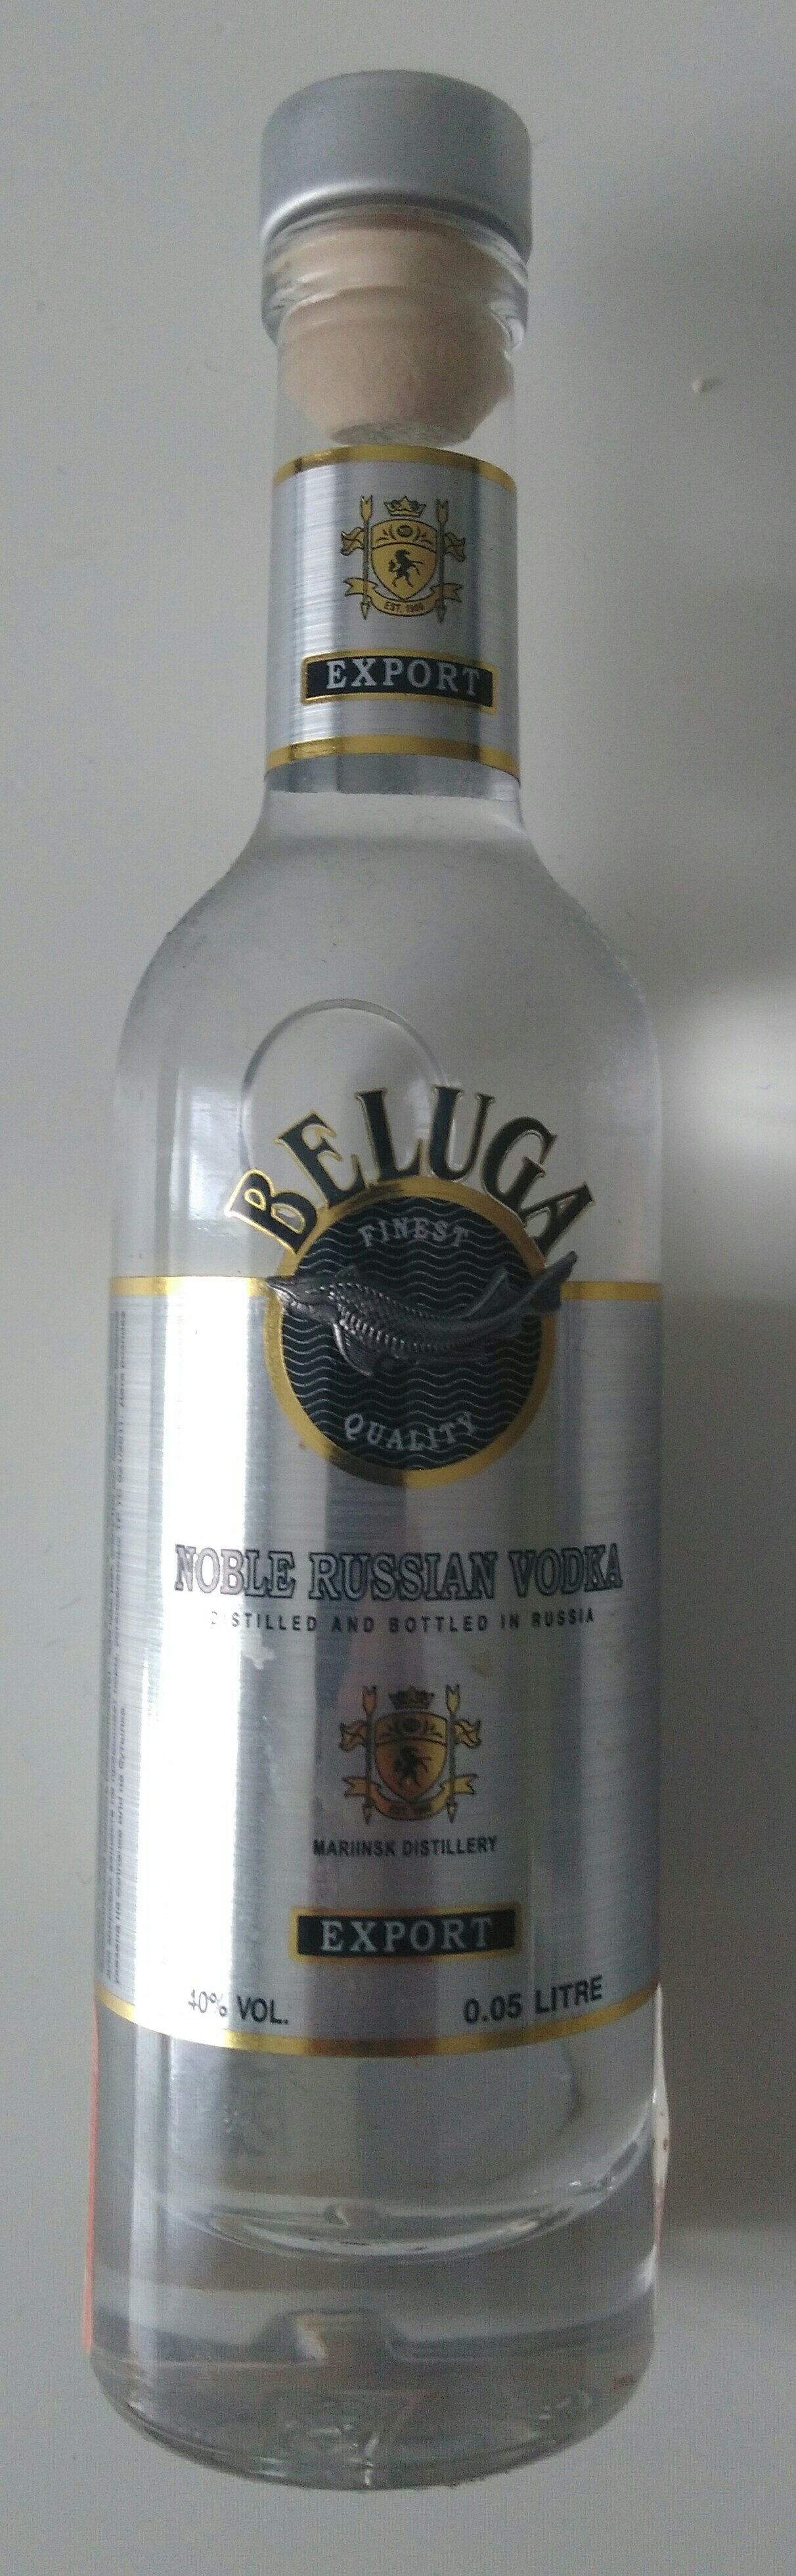 Noble Russian Vodka - Product - fr